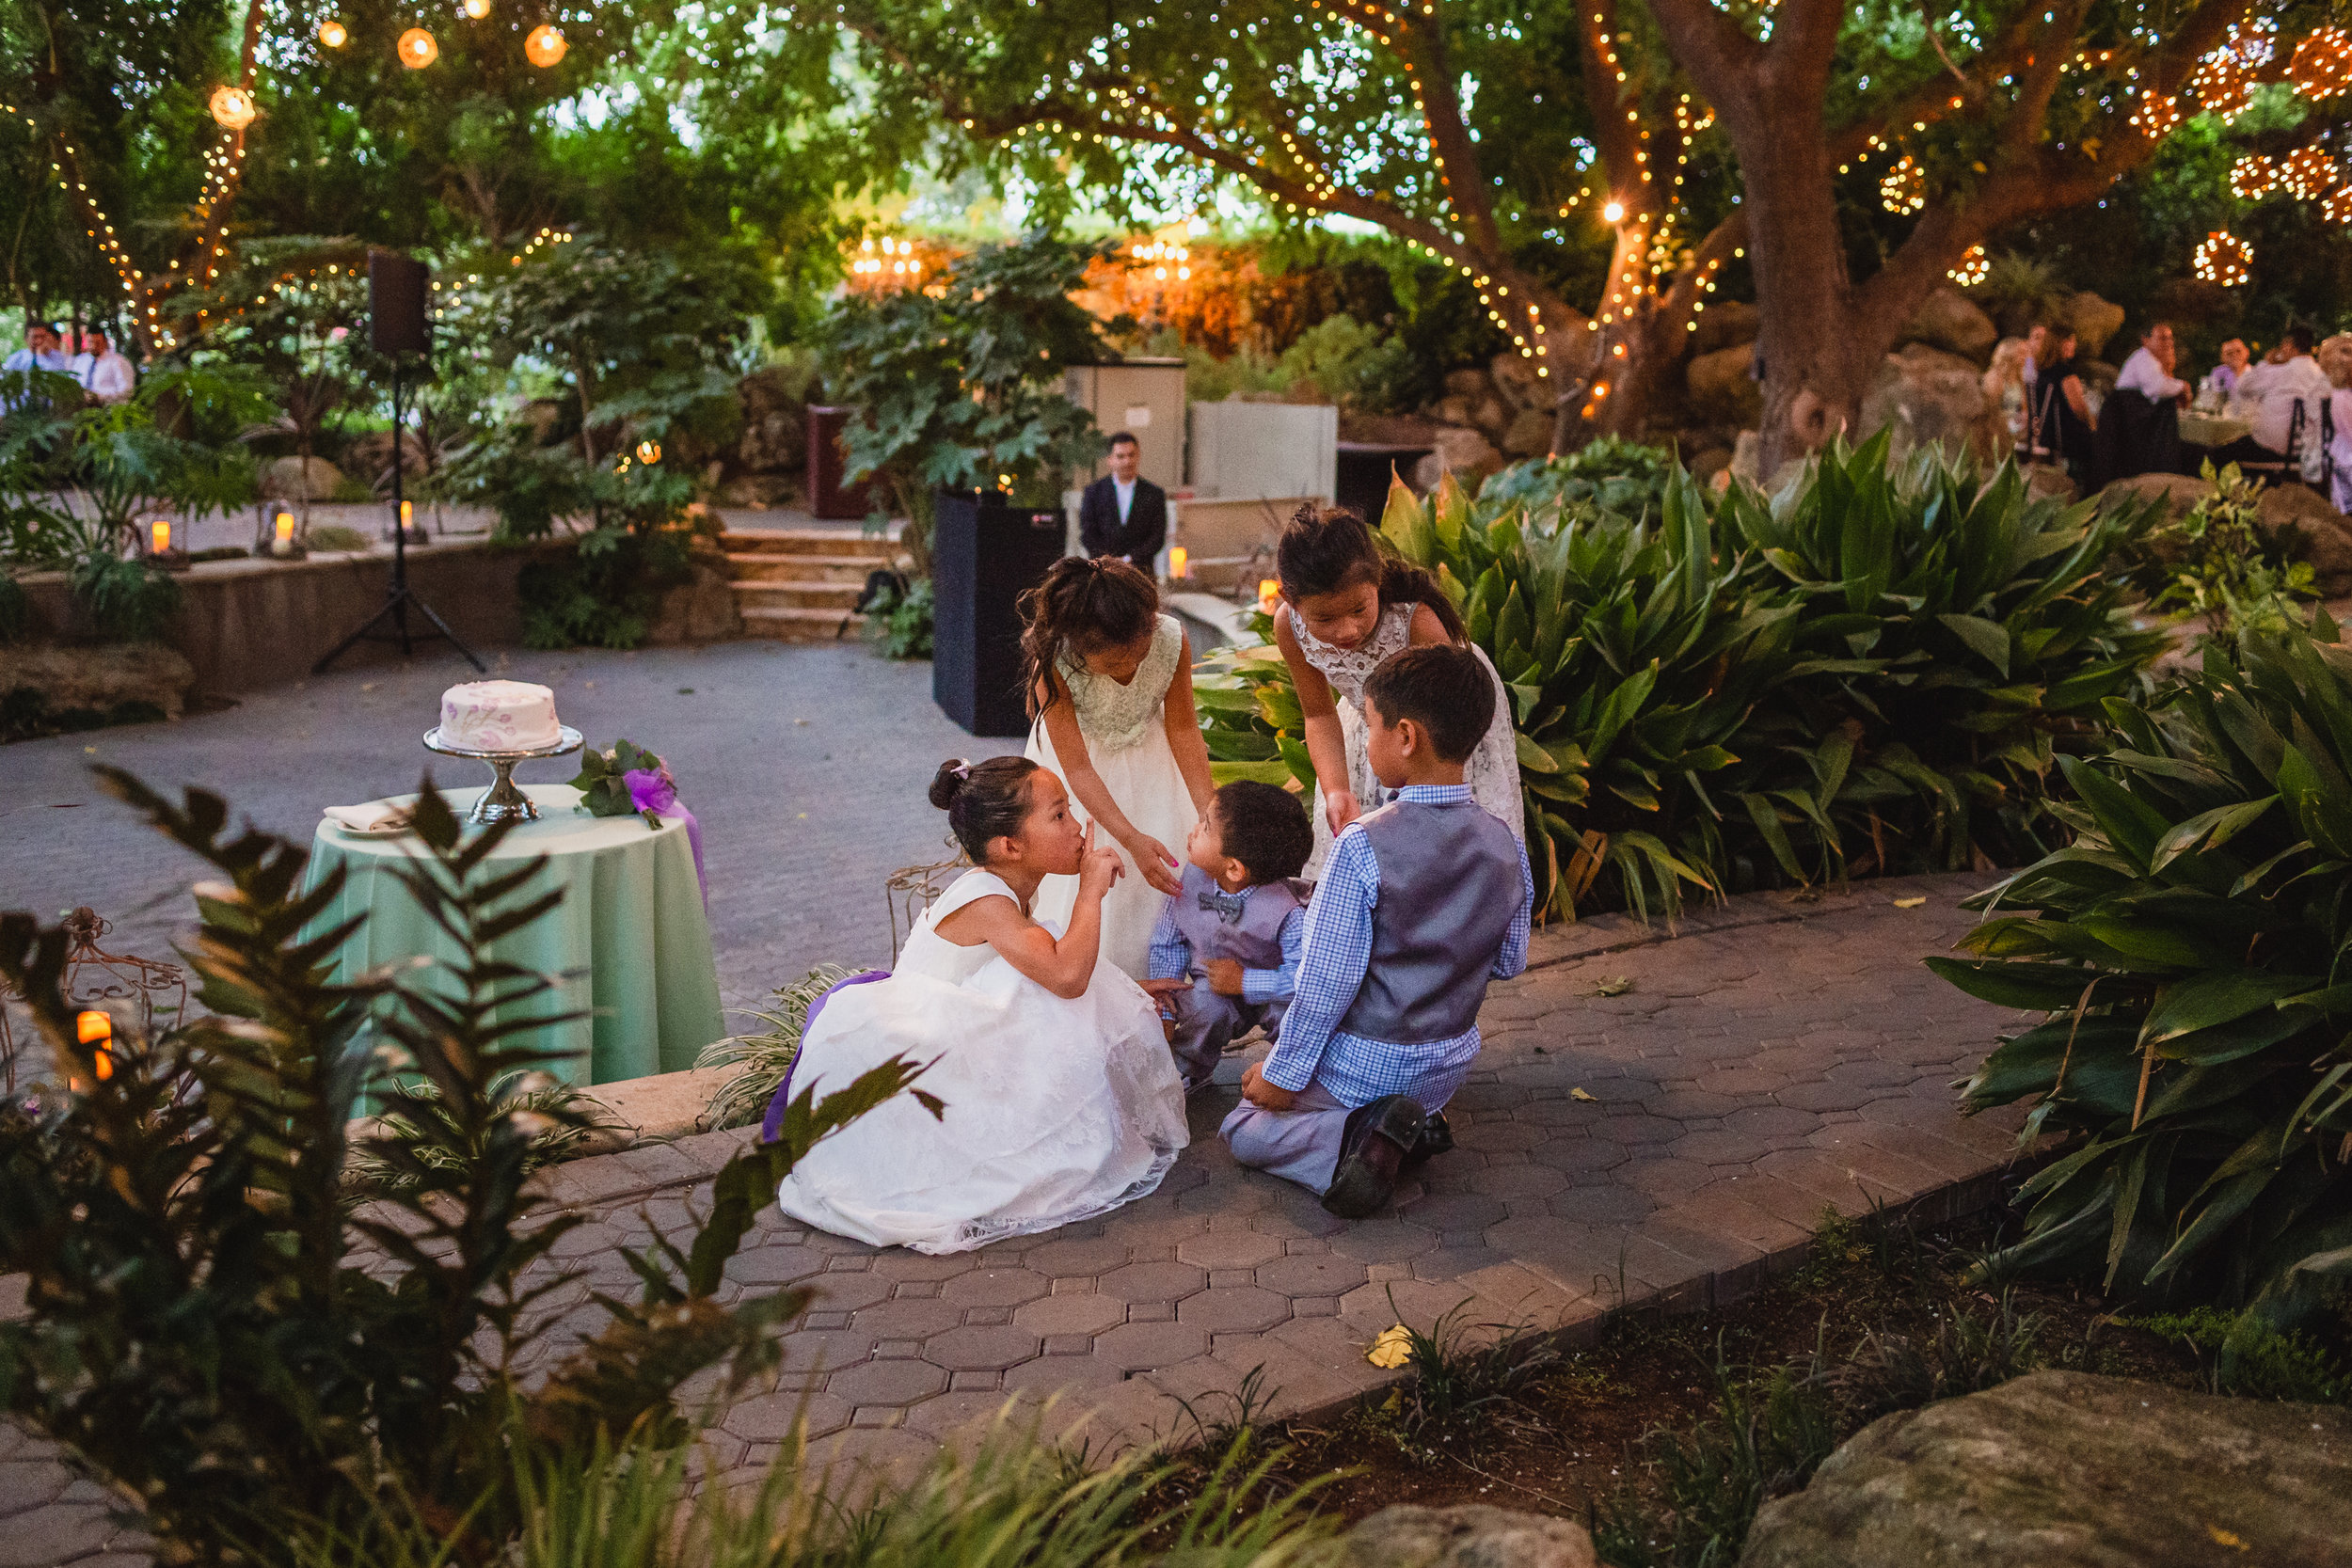 rebeccaylasotras-bay-area-garden-wedding-87.jpg